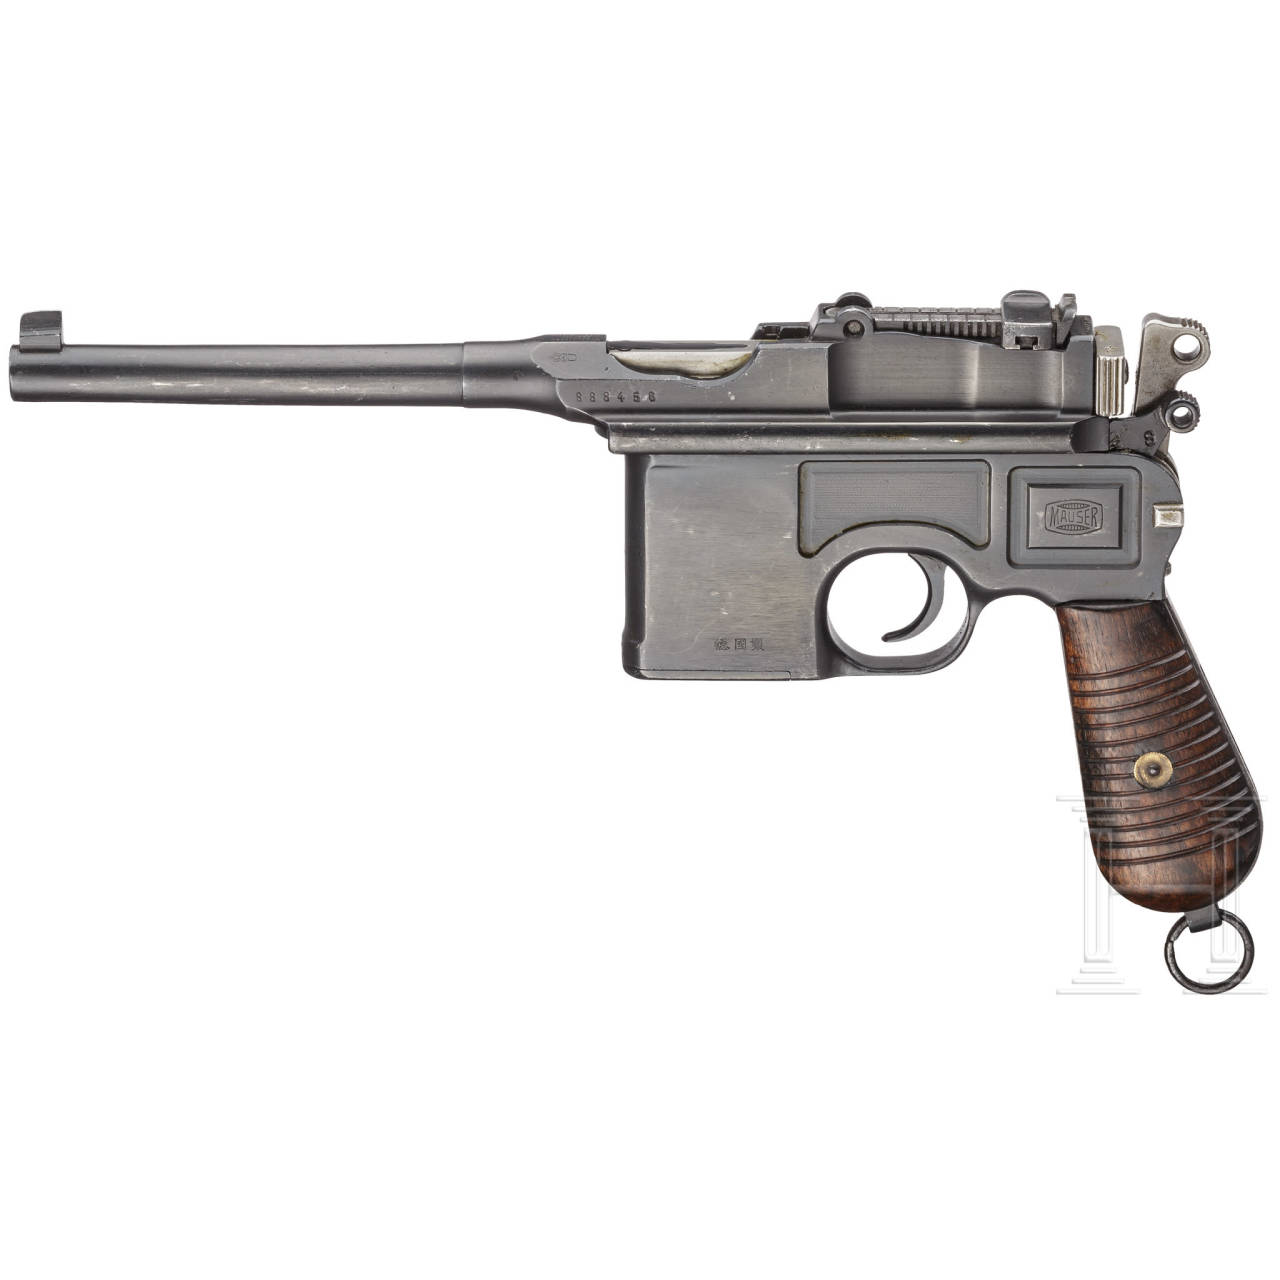 "Mauser C96 ""Chinese Contract"", with shoulder stock"